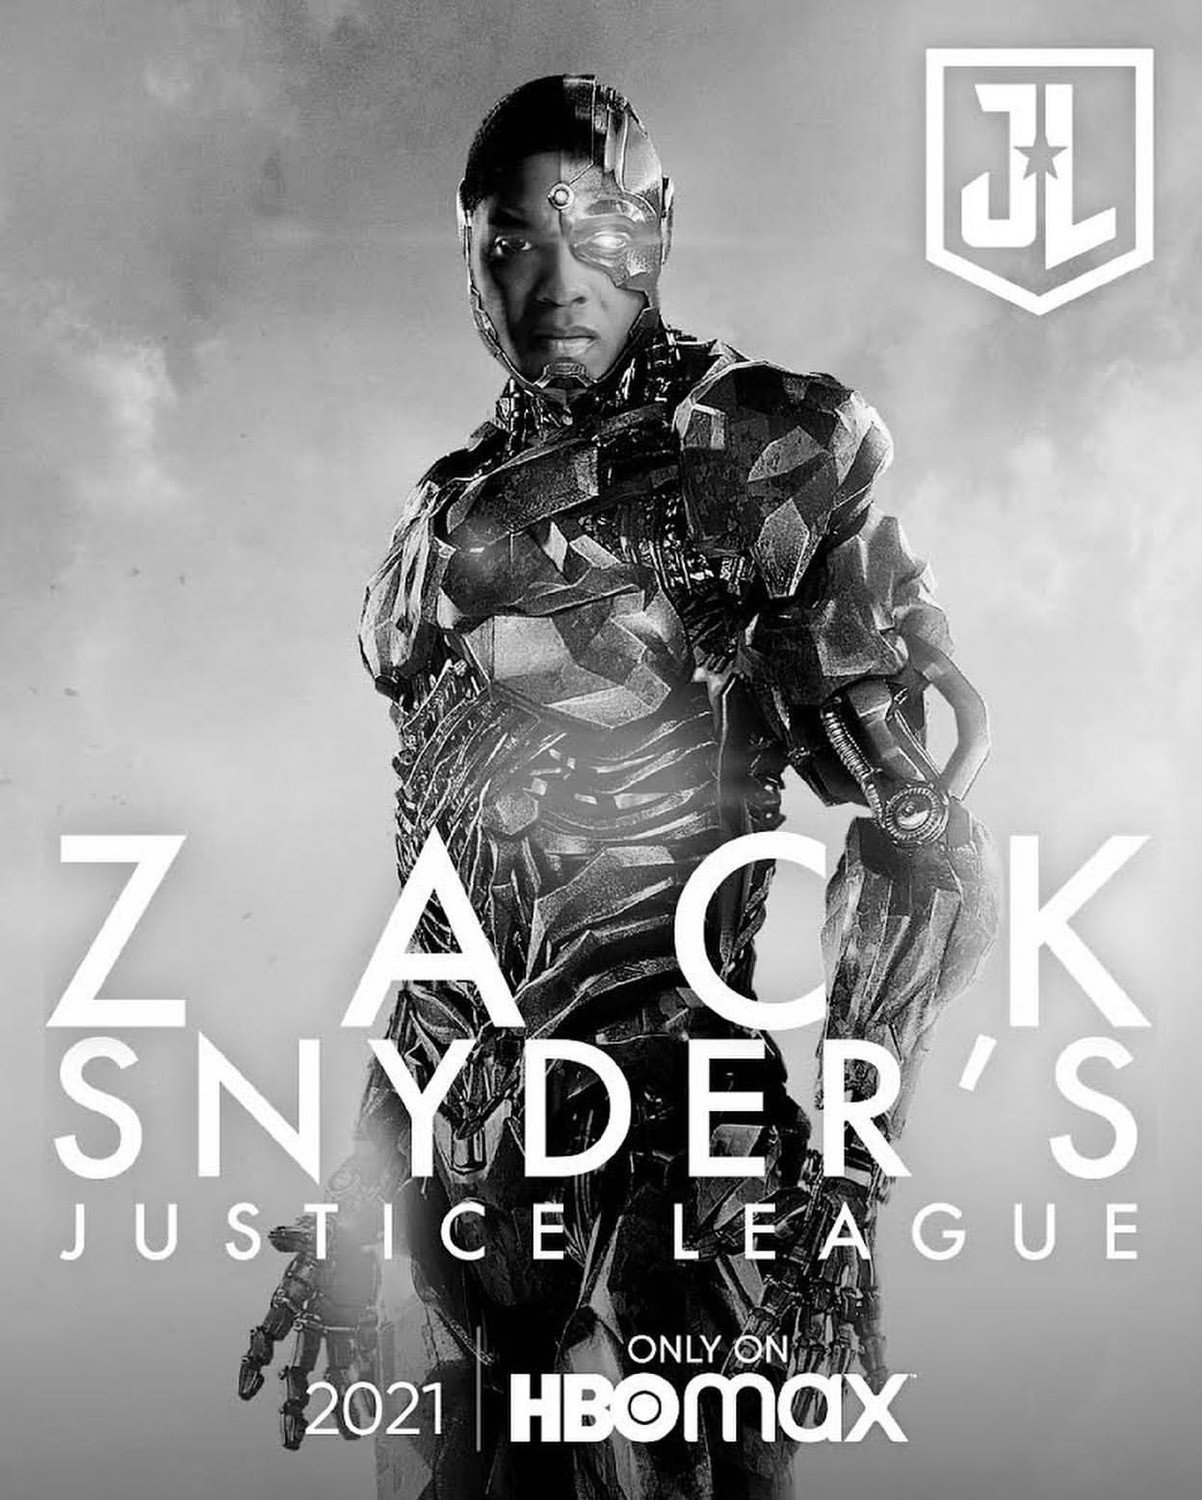 Poster of Zack Snyder's Justice League (2021)